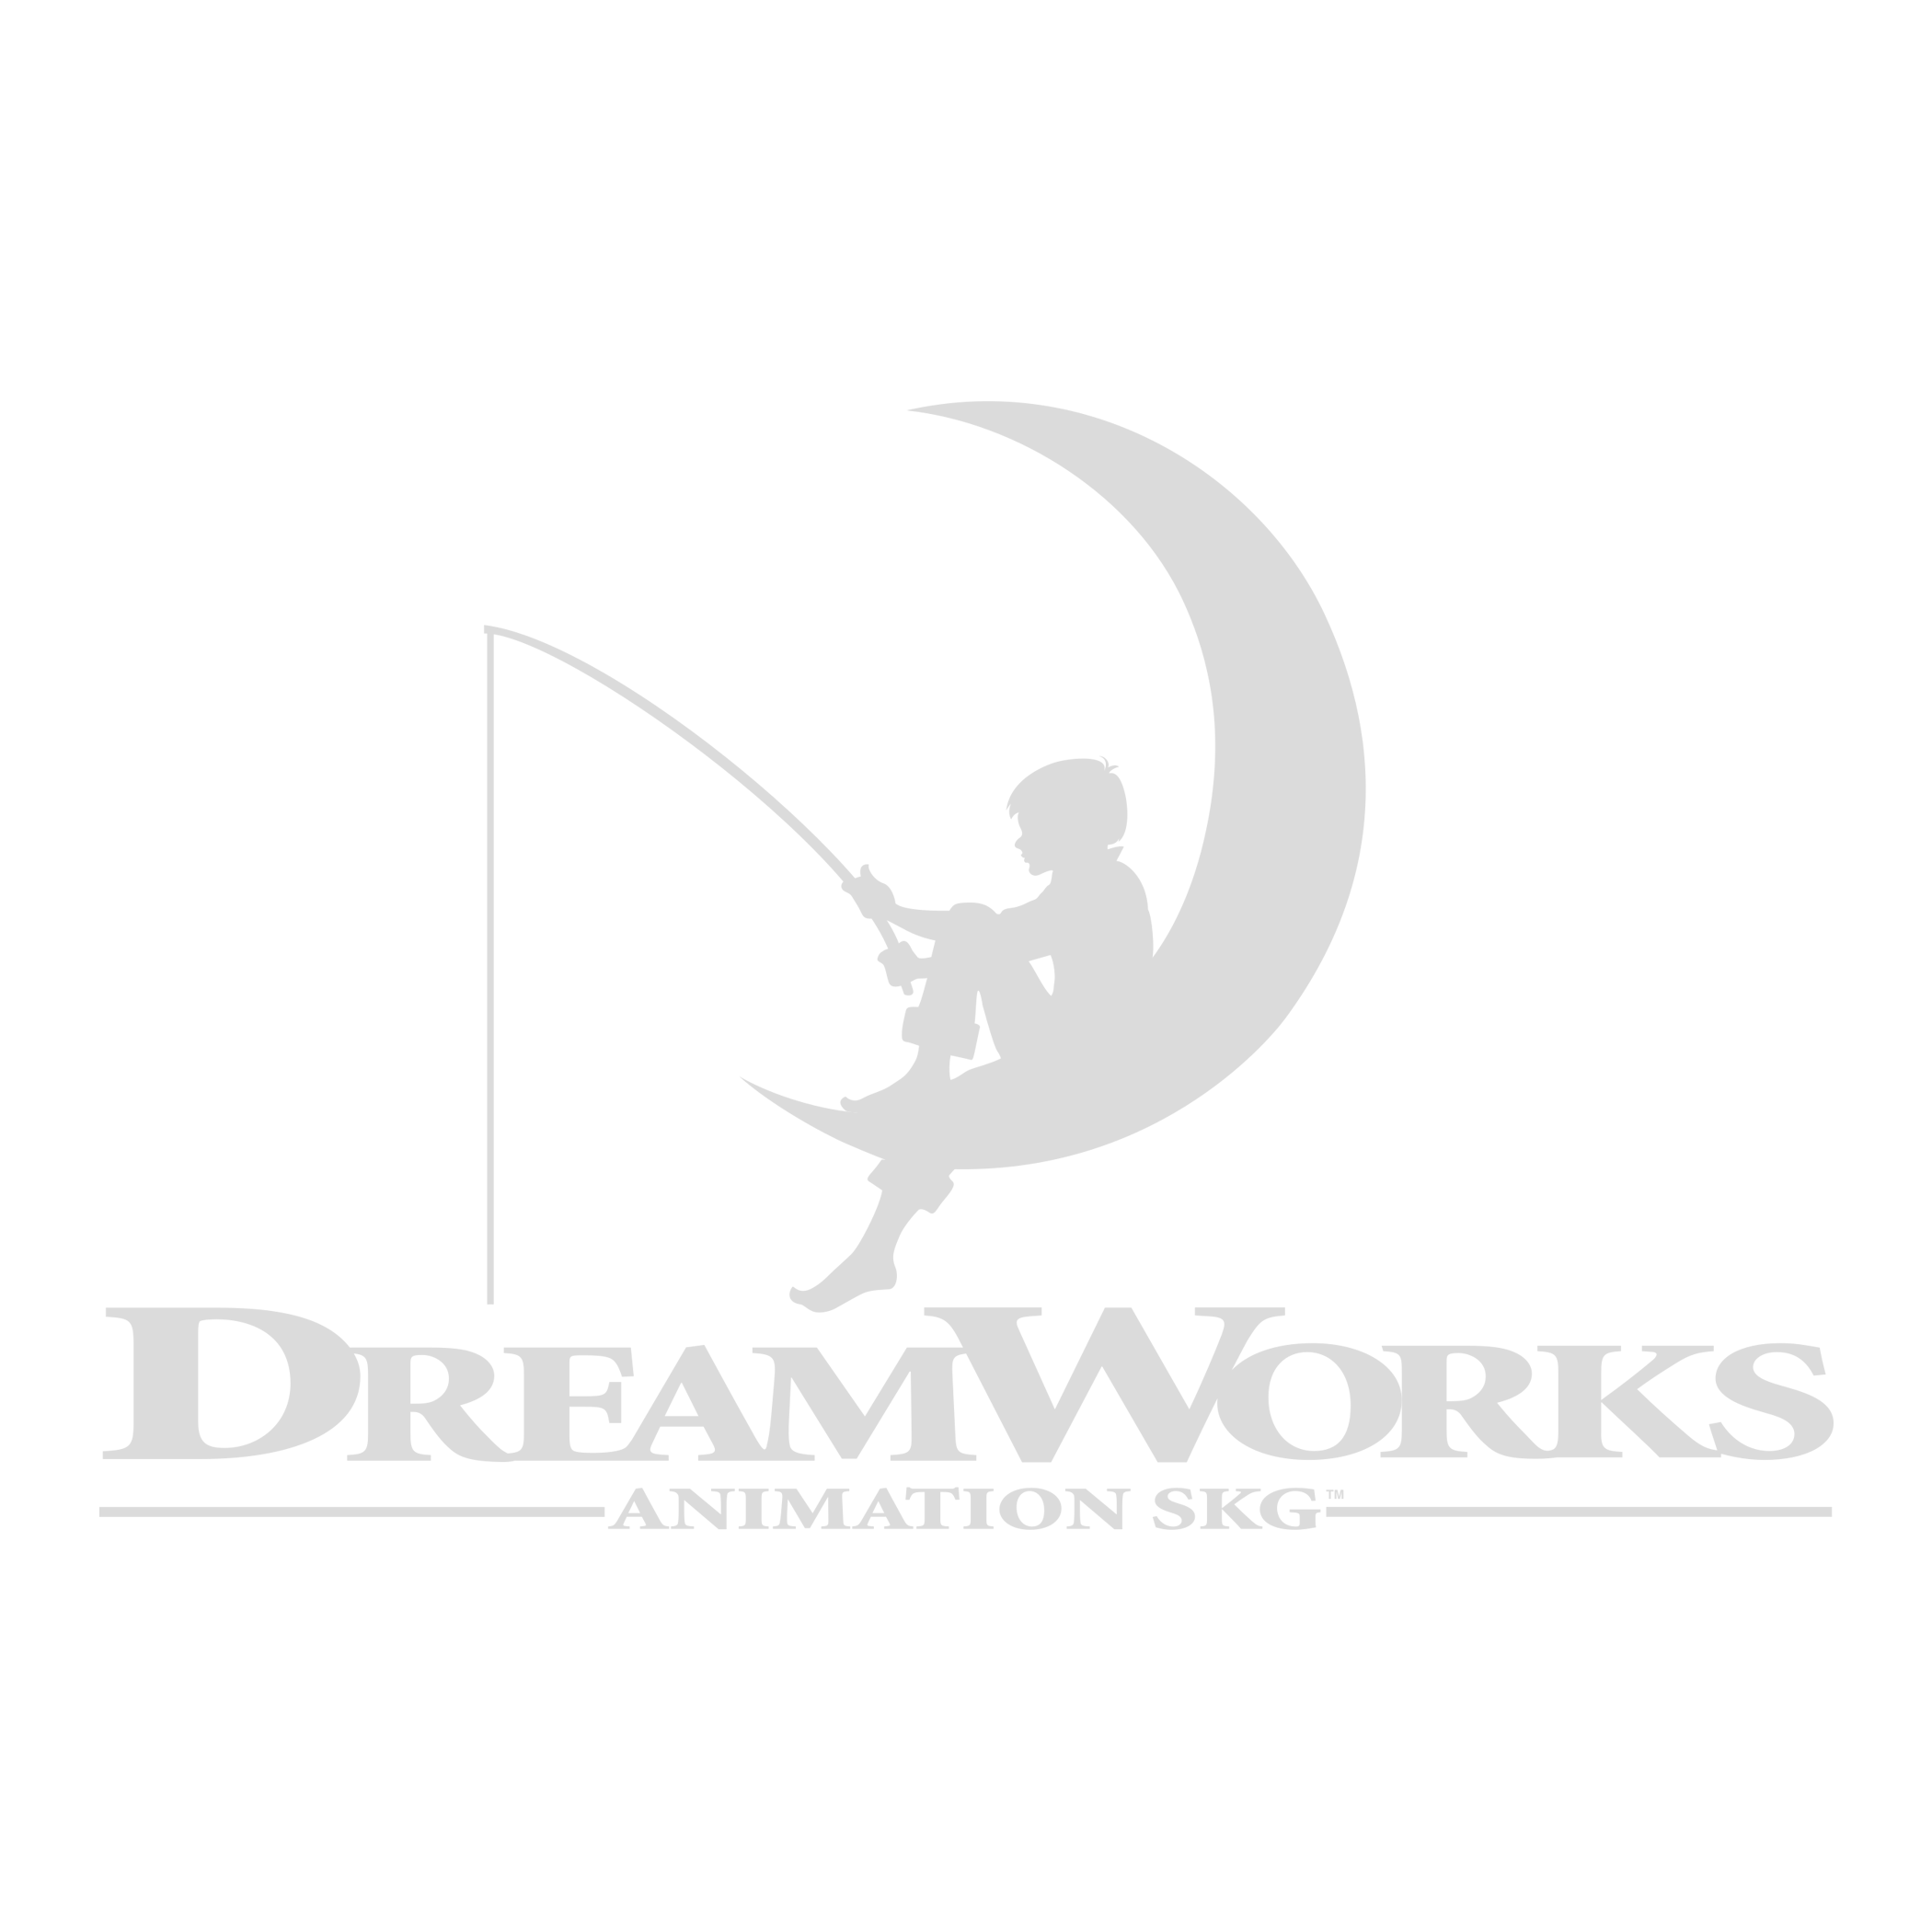 DREAMWORKS_GRAY.png